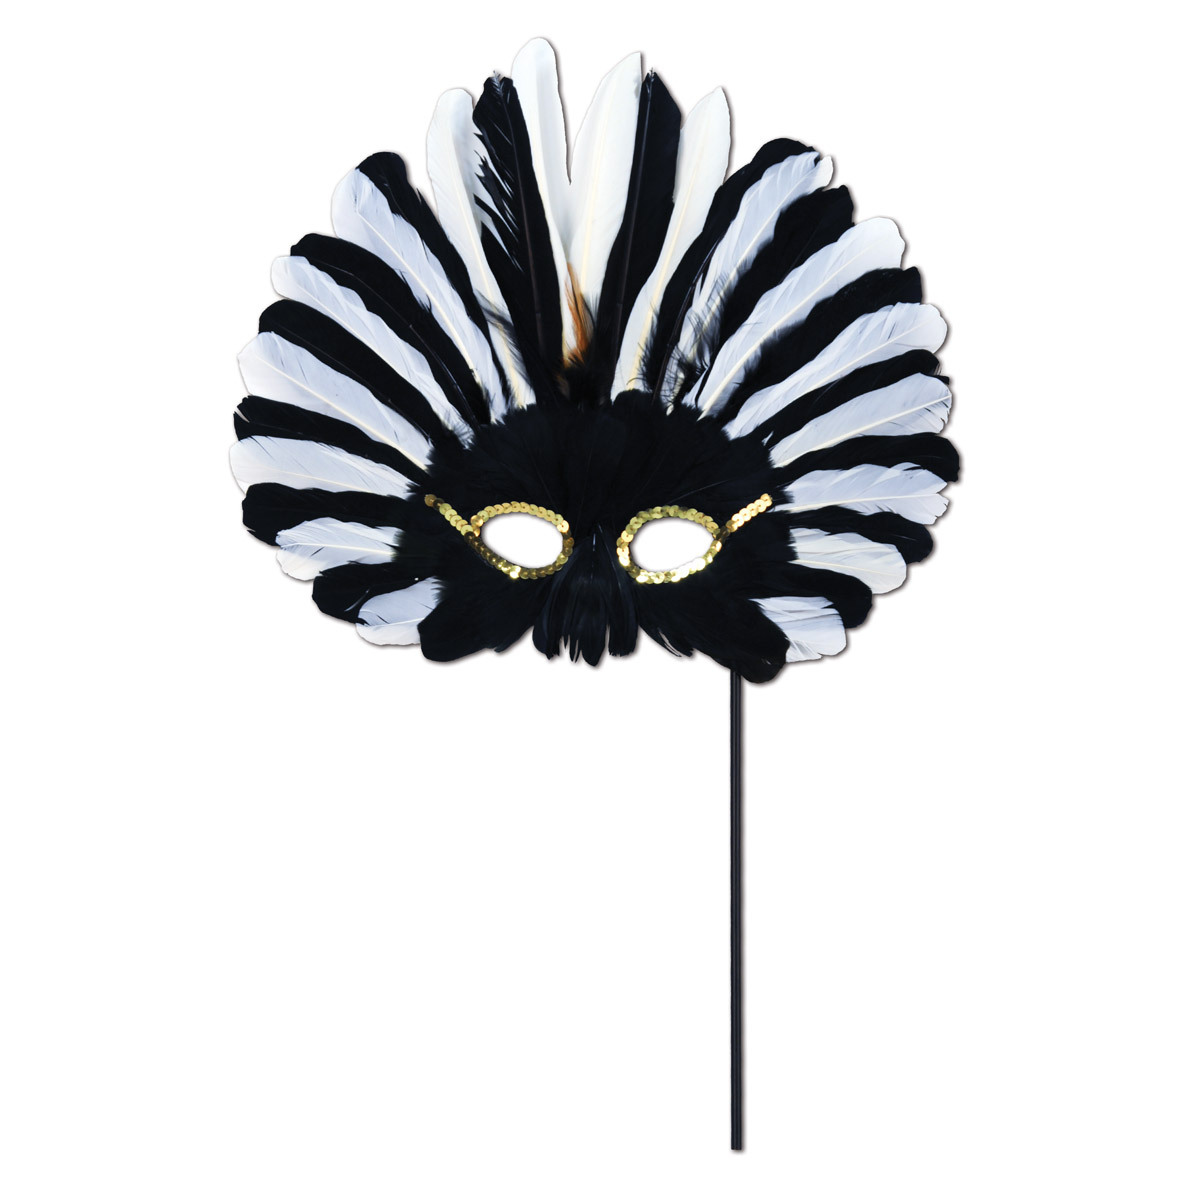 black and white feathered mask on black stick